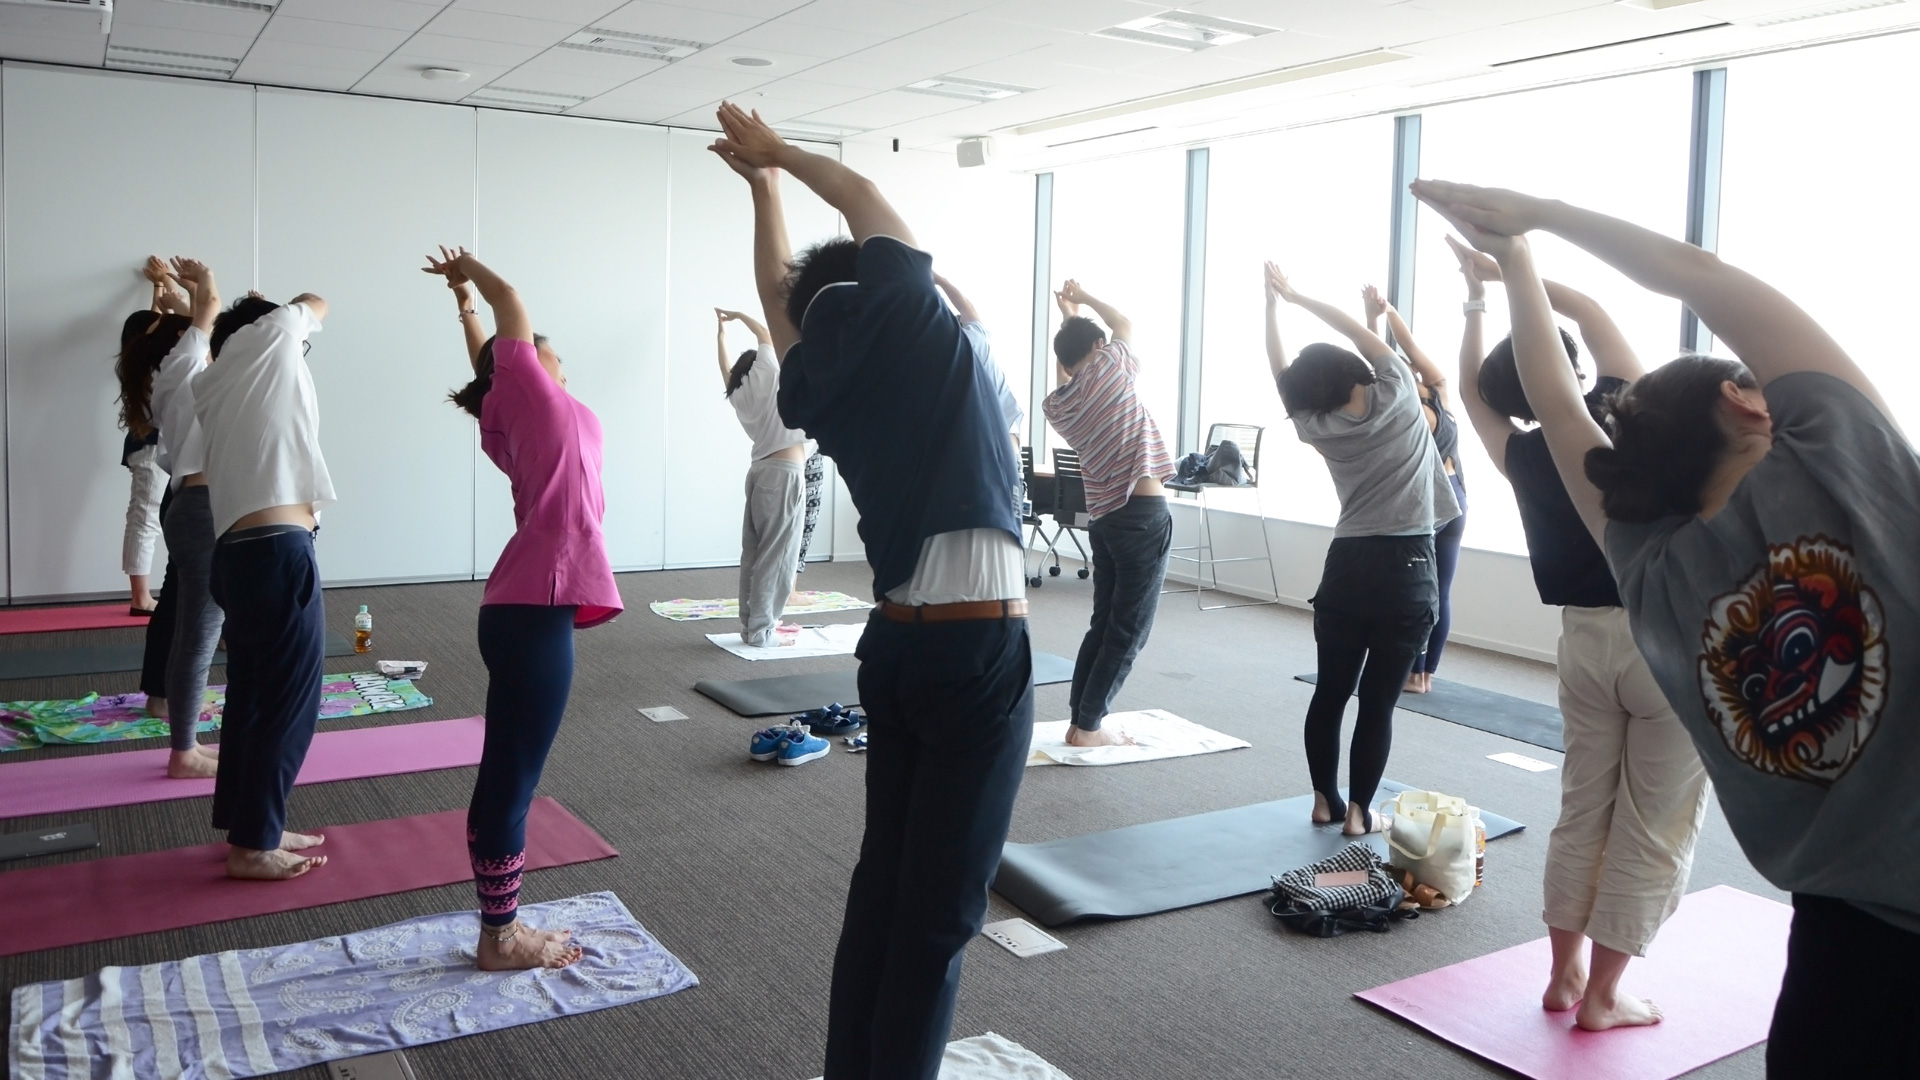 「ReFresh Yoga」の様子